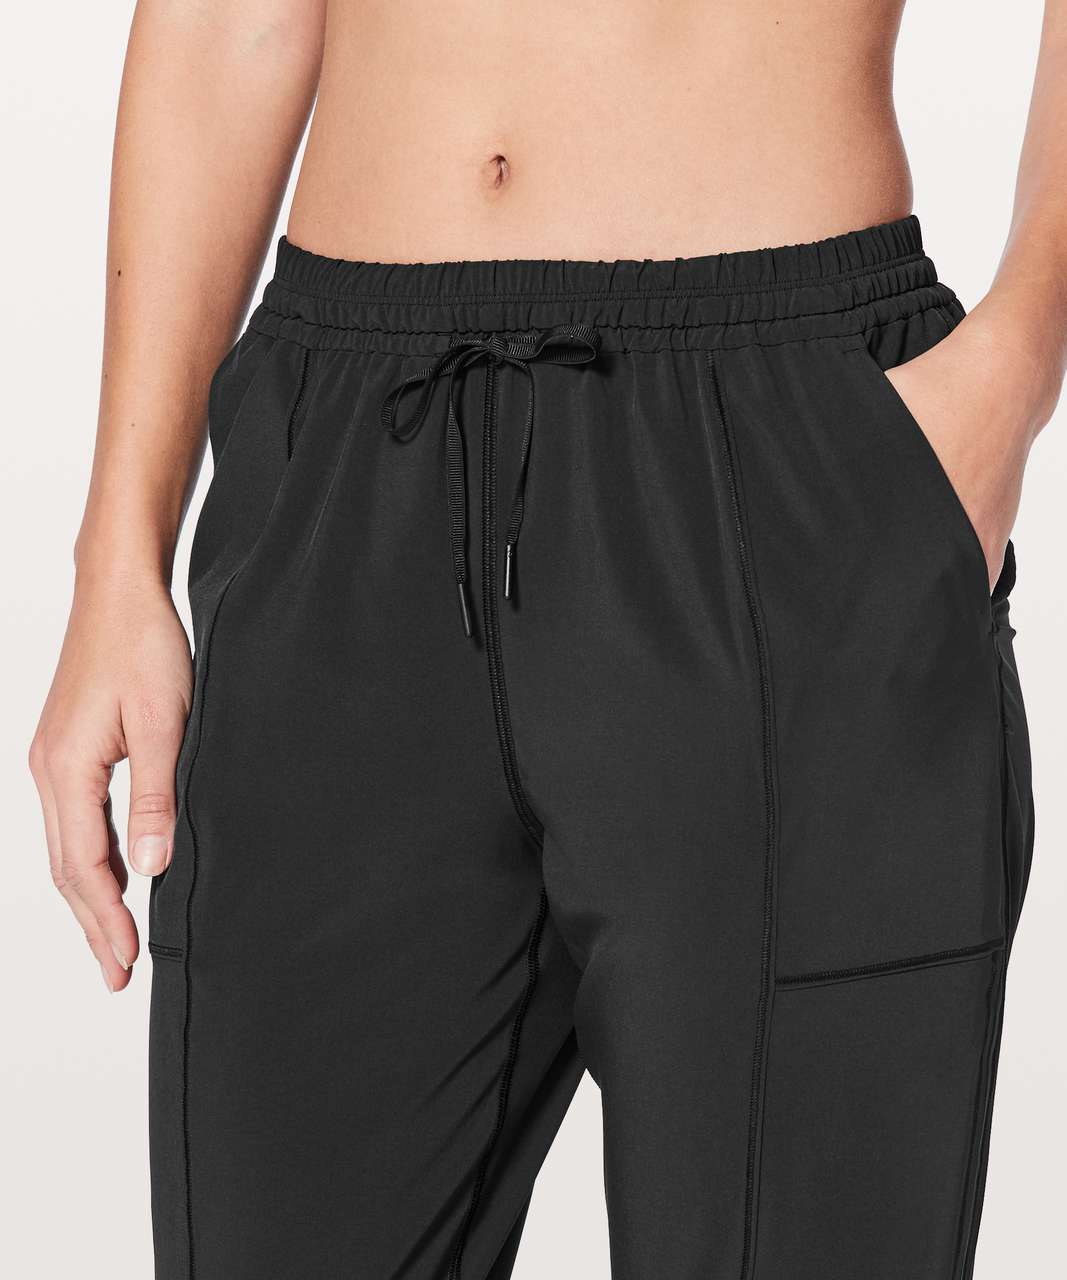 "Lululemon Final Play Crop *23"" - Black"